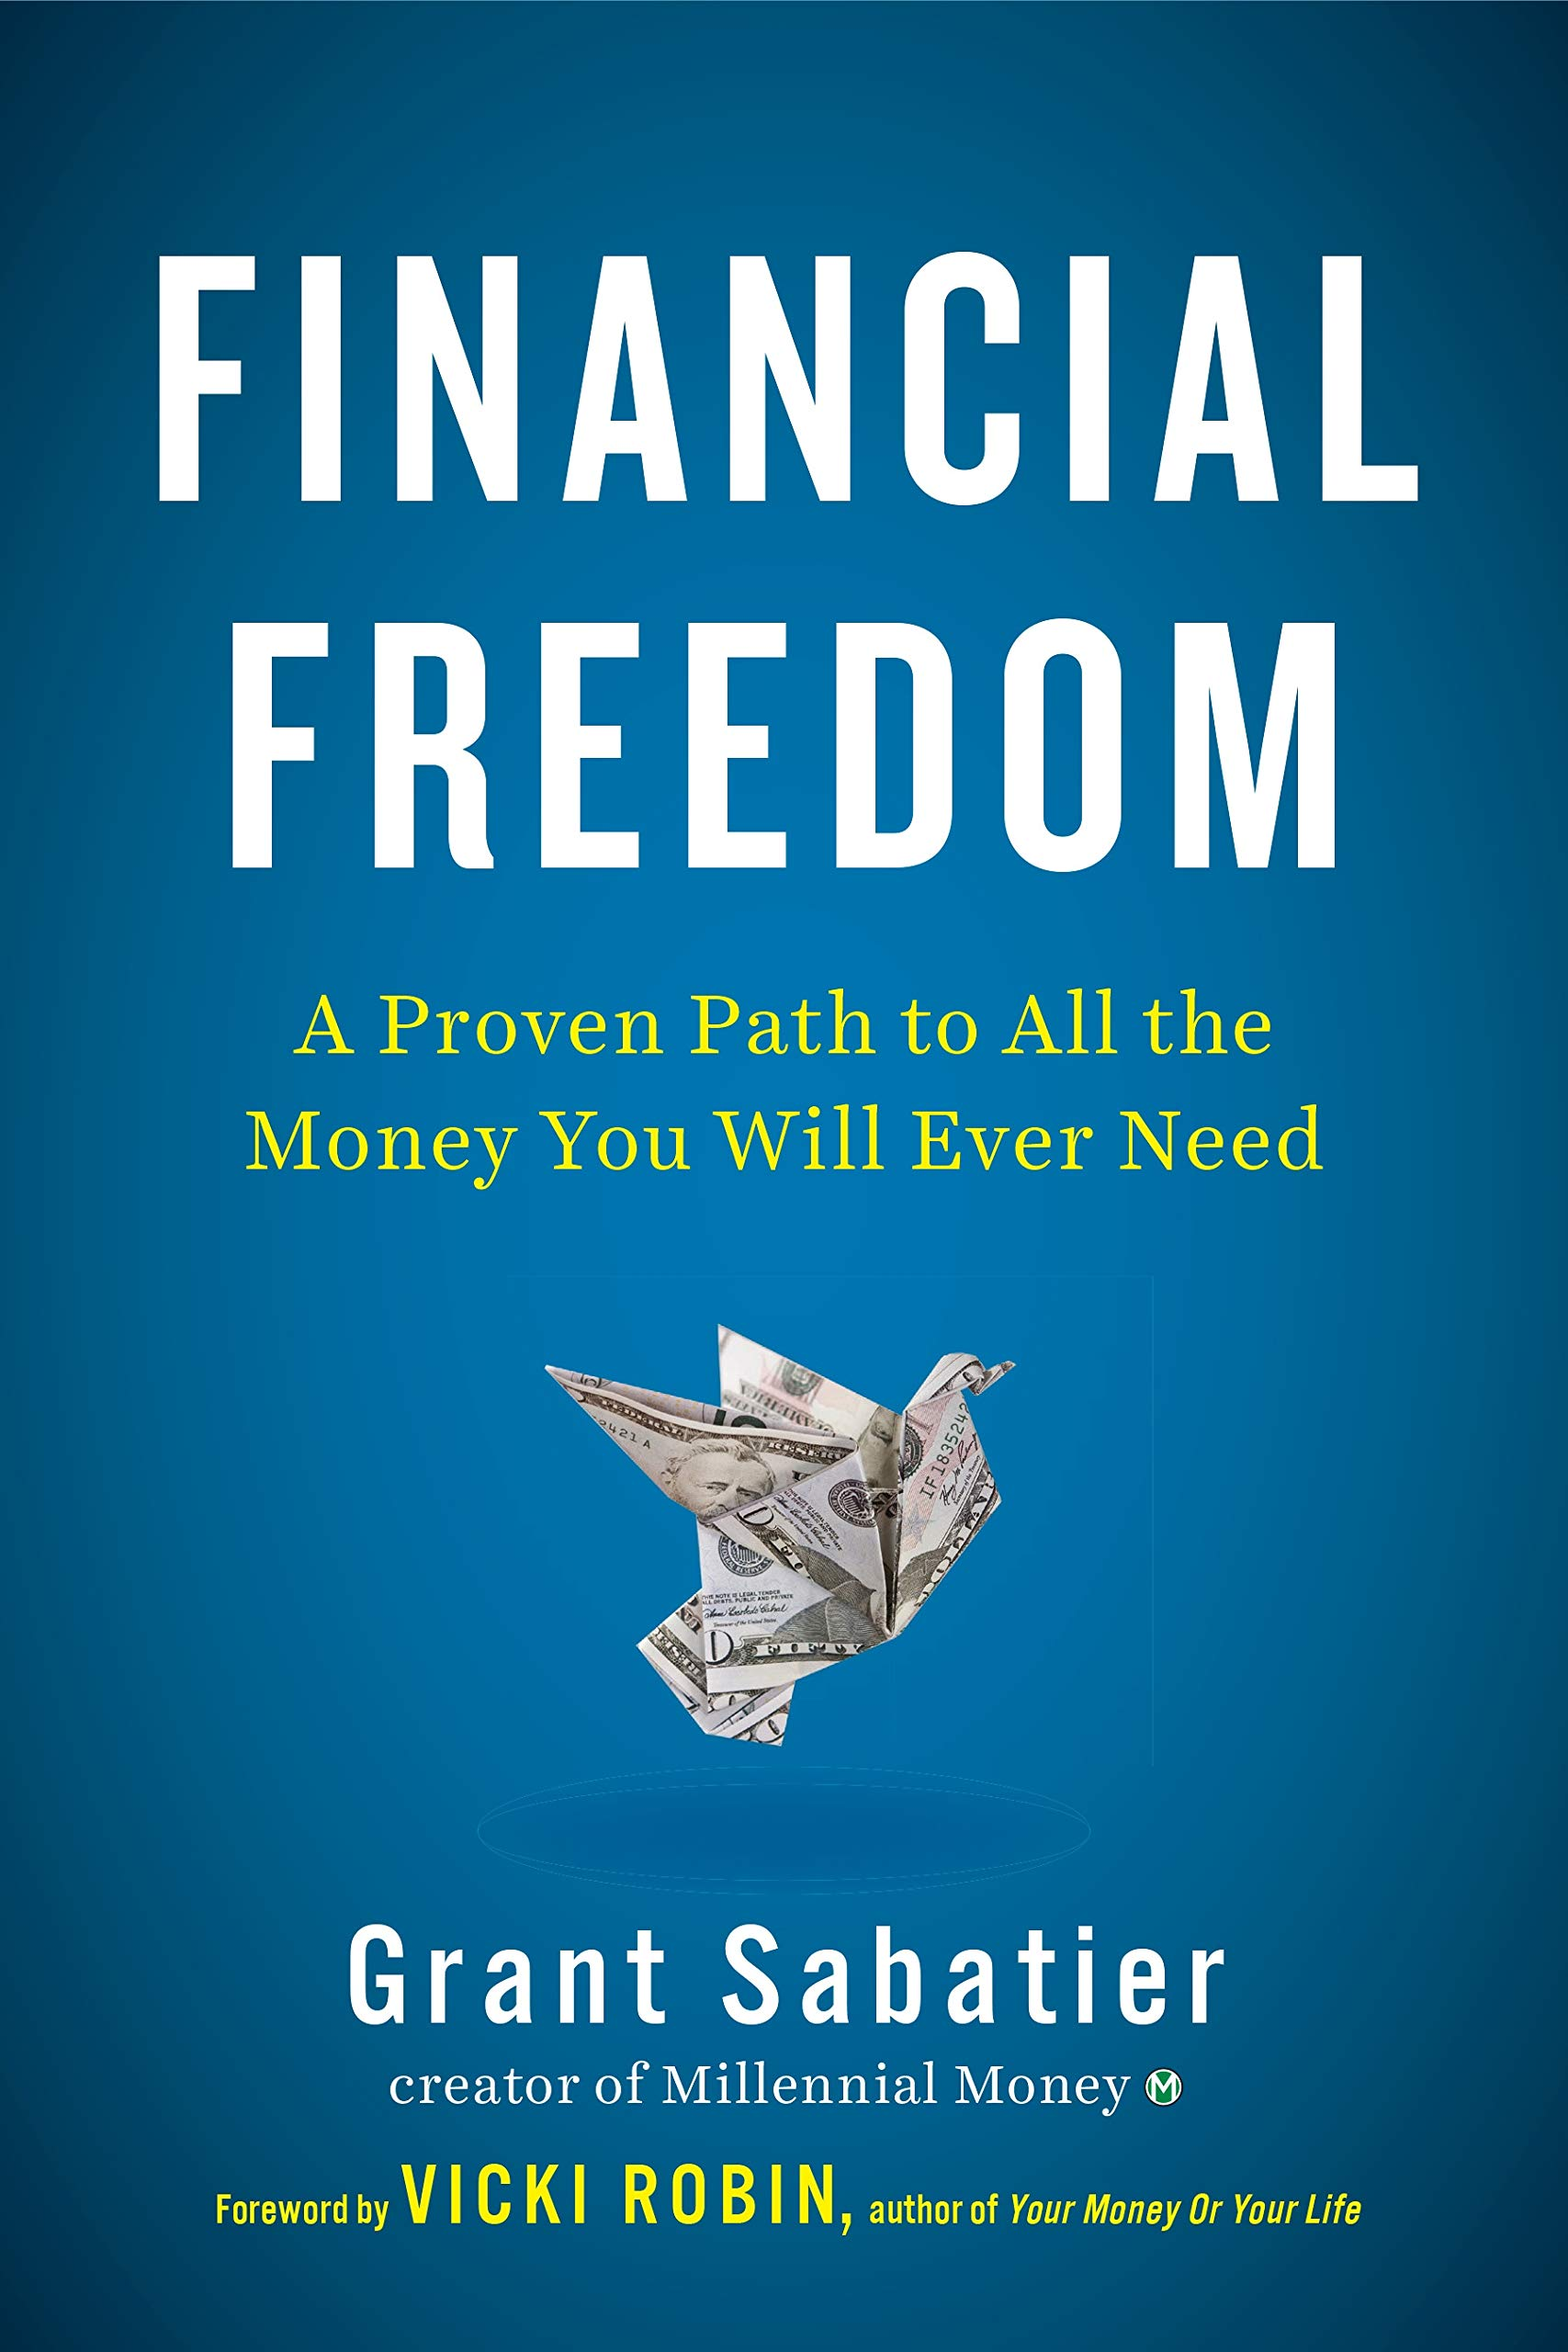 Financial Freedom: A Proven Path to All the Money You Will Ever Need: Grant  Sabatier, Vicki Robin: 9780525540885: Amazon.com: Books